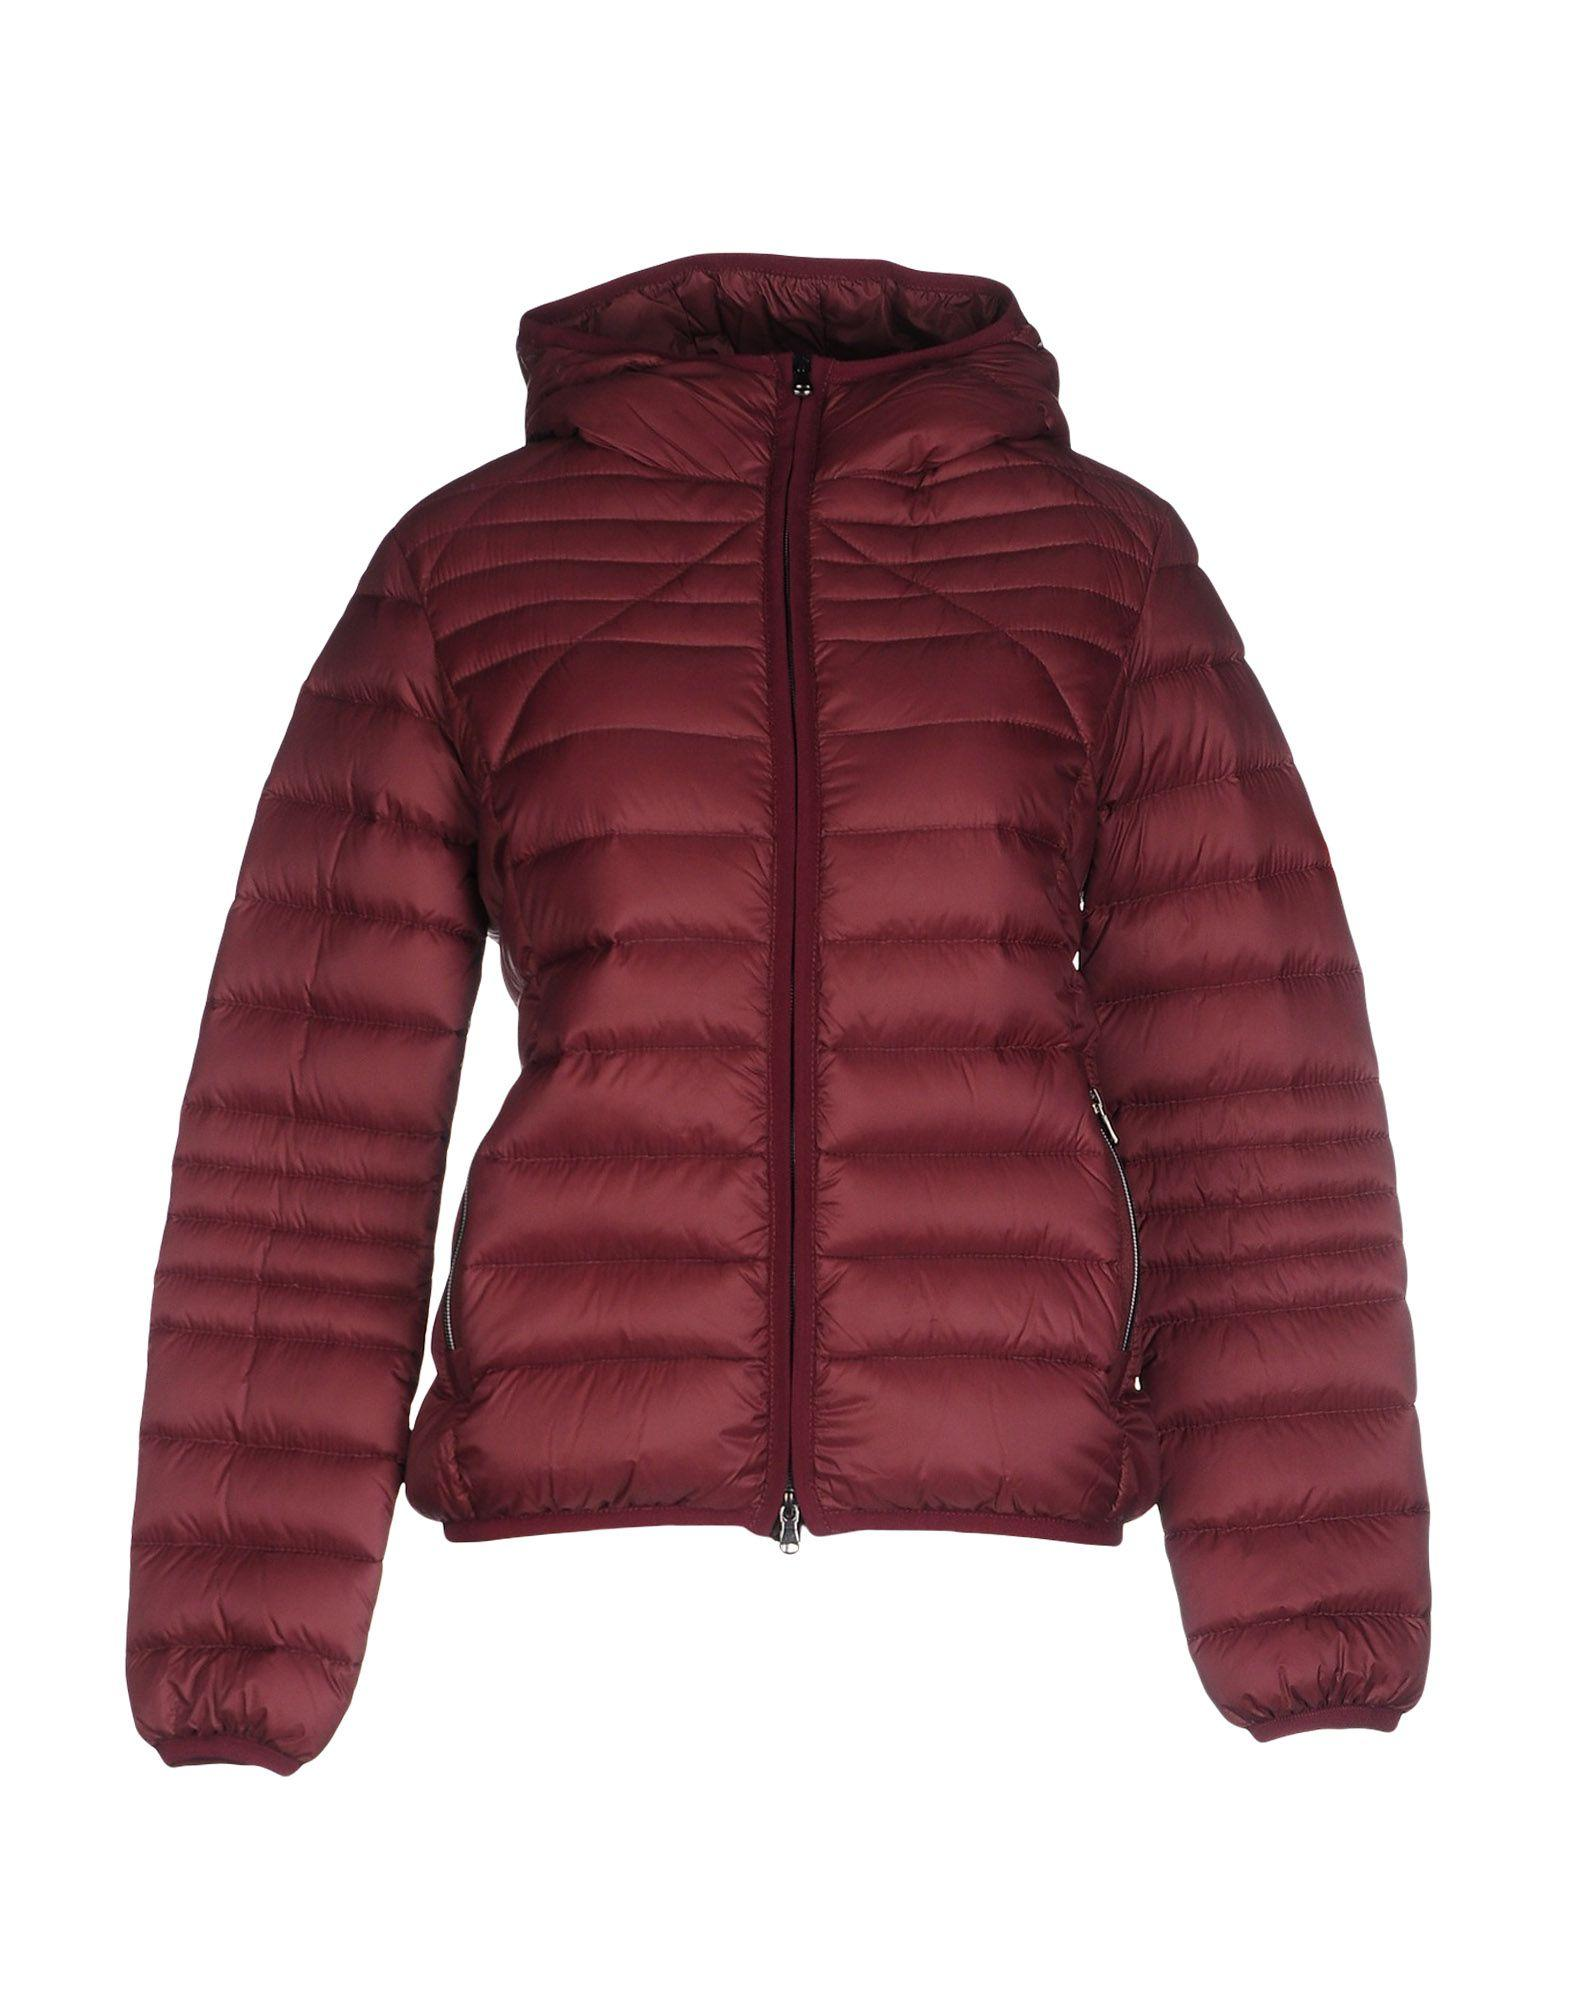 Mauro Grifoni Down Jackets In Maroon